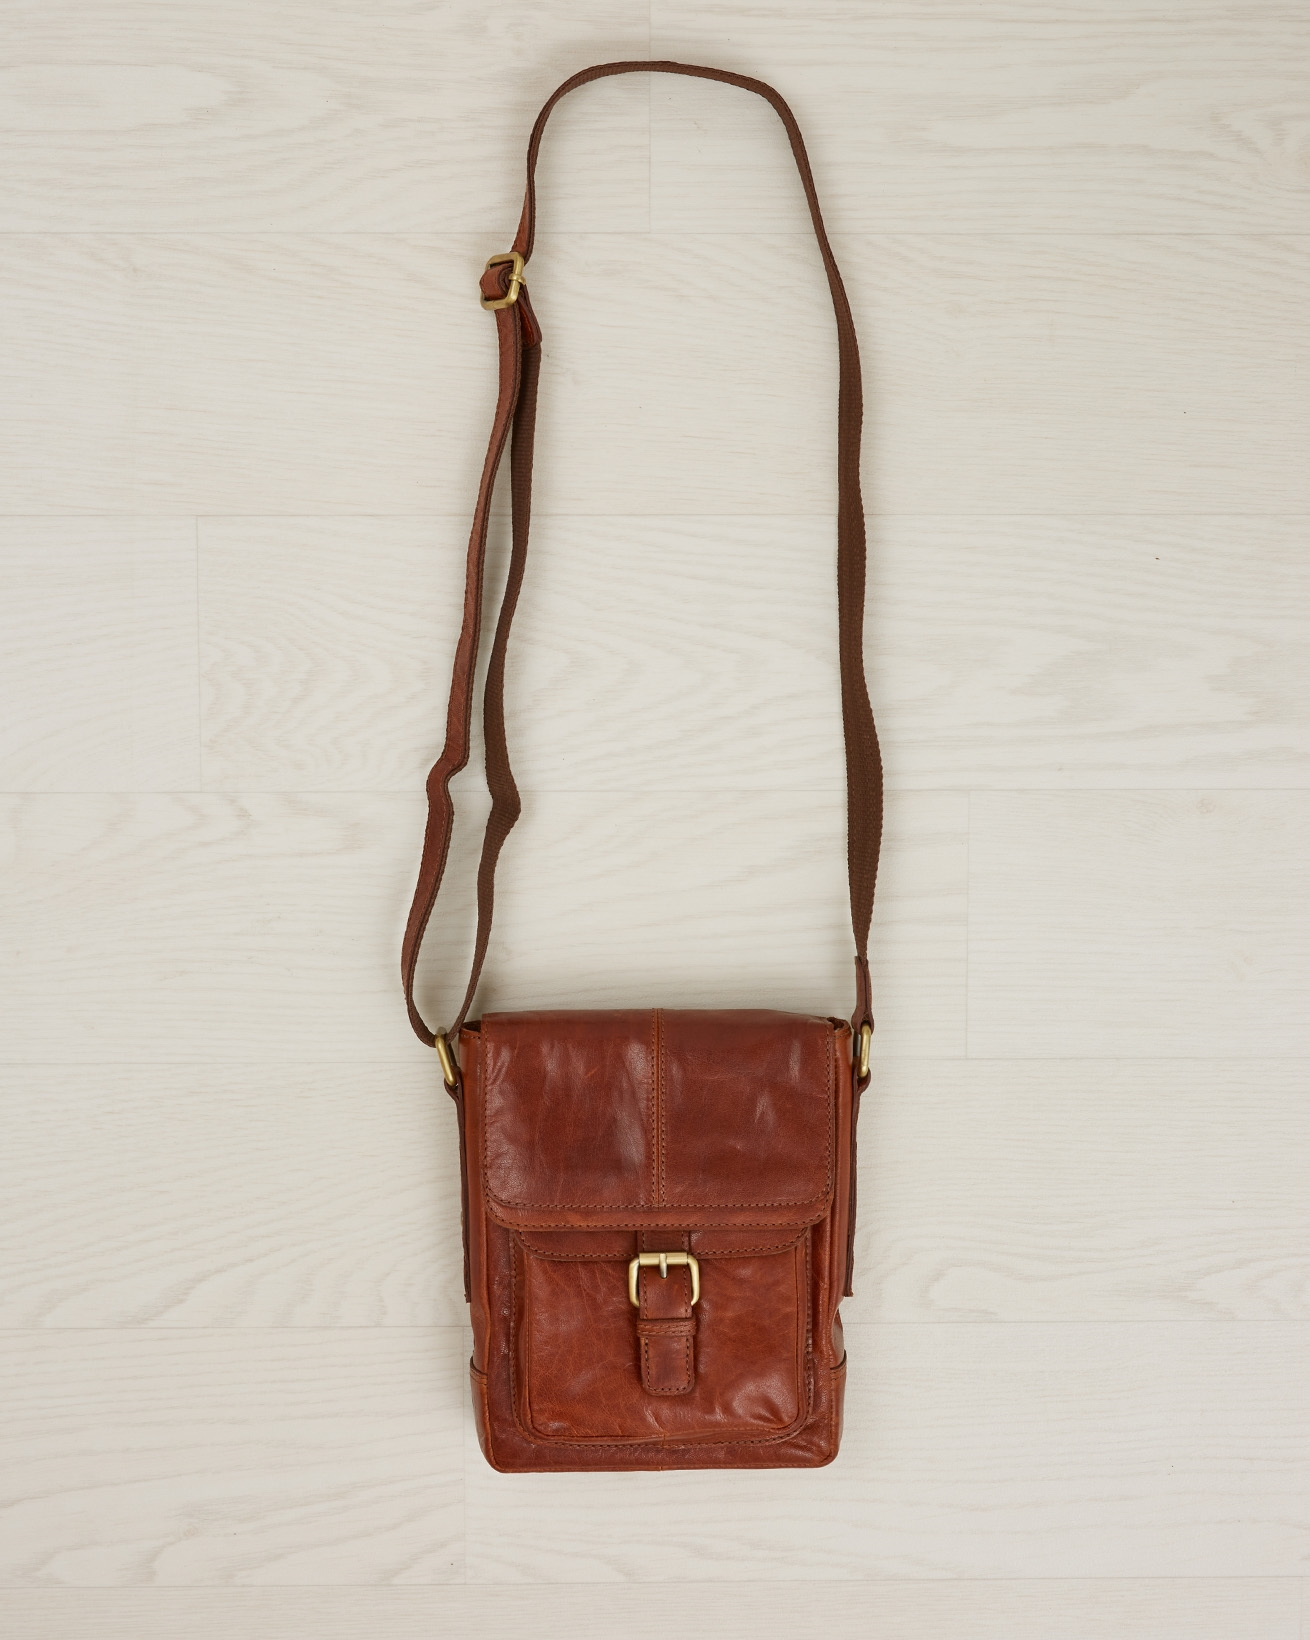 Leather Buckle Detail Shoulder Bag - One/Size - Autumn brown - 2391